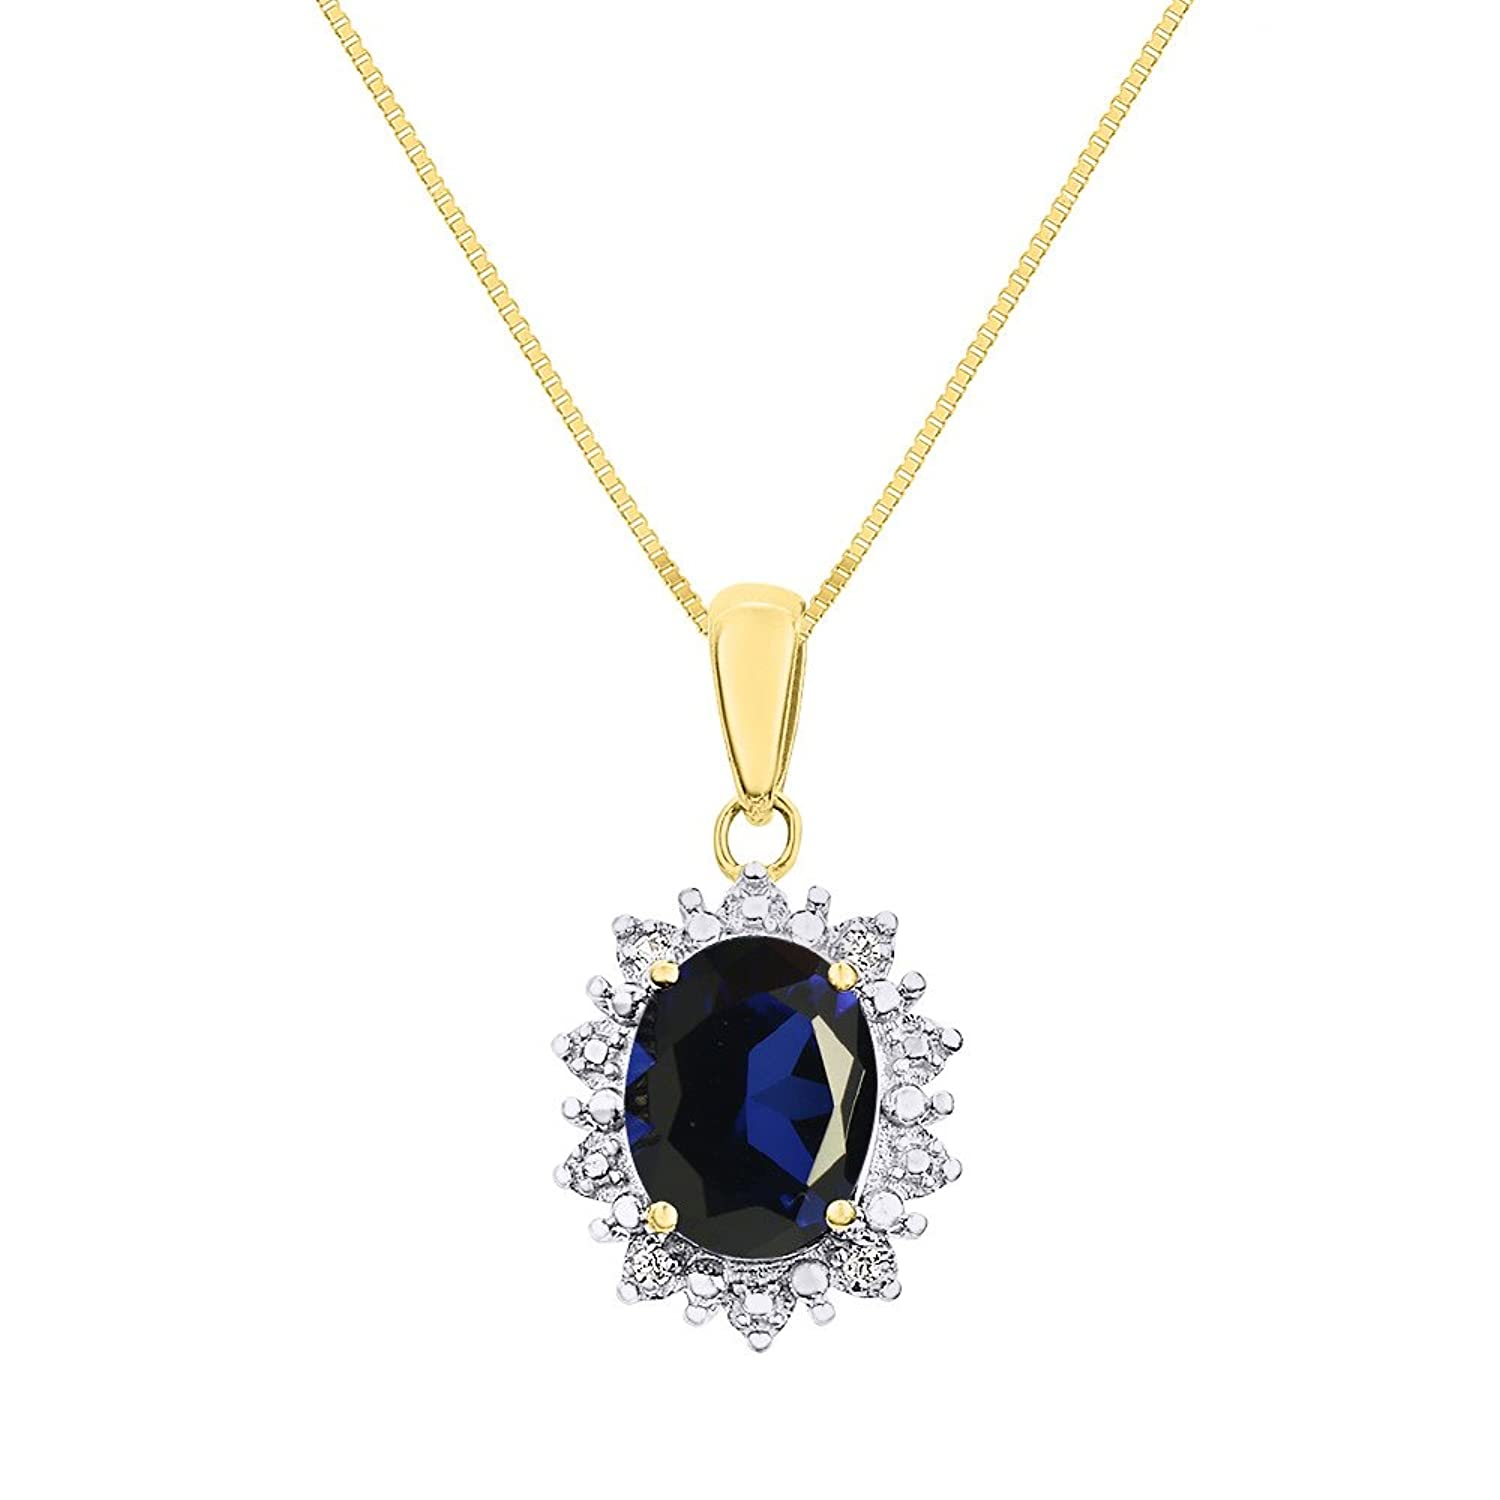 """Diamond & Sapphire Pendant Necklace Set In 14K Yellow Gold with 18"""" Chain Princess Diana Inspired Halo"""